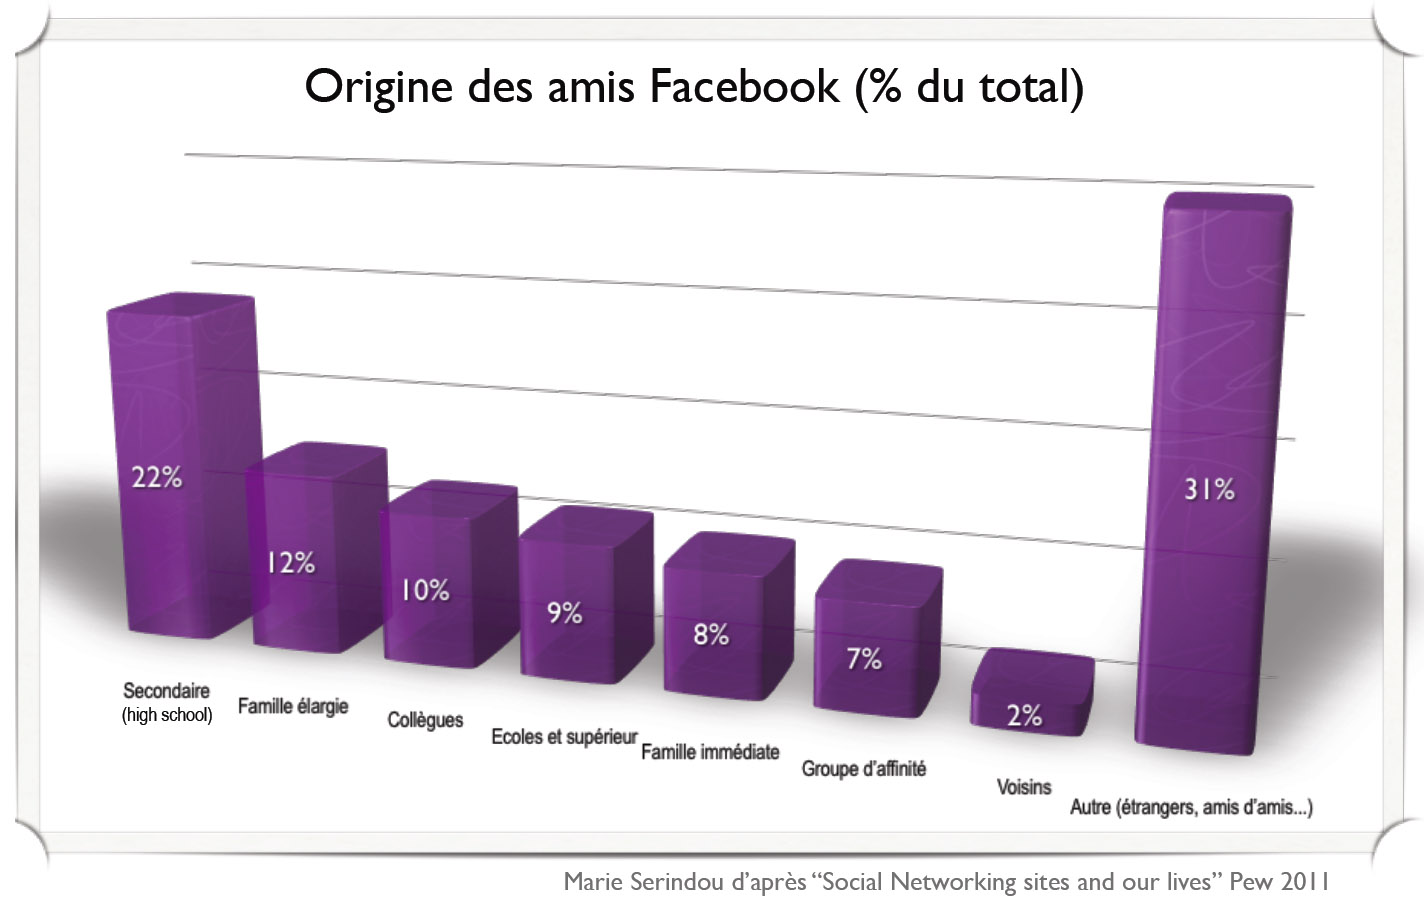 Origine des amis Facebook